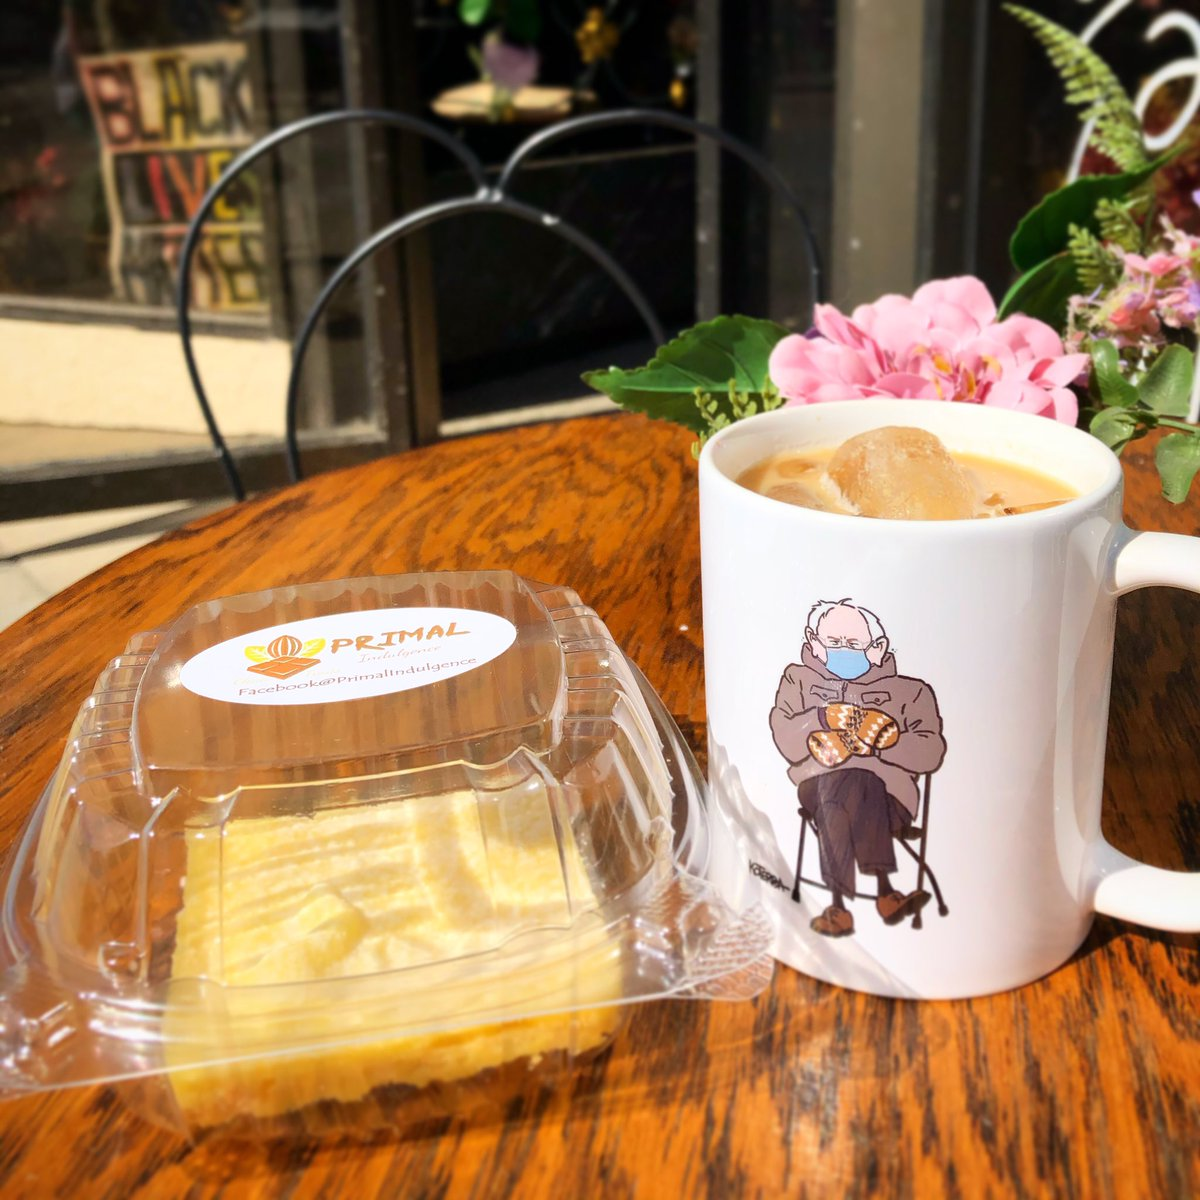 This iced vanilla latte goes PERFECTLY with keto lemon bars from @primalindulgence 😋 Now if only Bernie could warm up!  You can purchase your own Bernie mug created by @jeffreykoterba 💜   #omaha #berniesanders #berniesandersmemes #berniememes #berniemittens #cafe #latte #keto